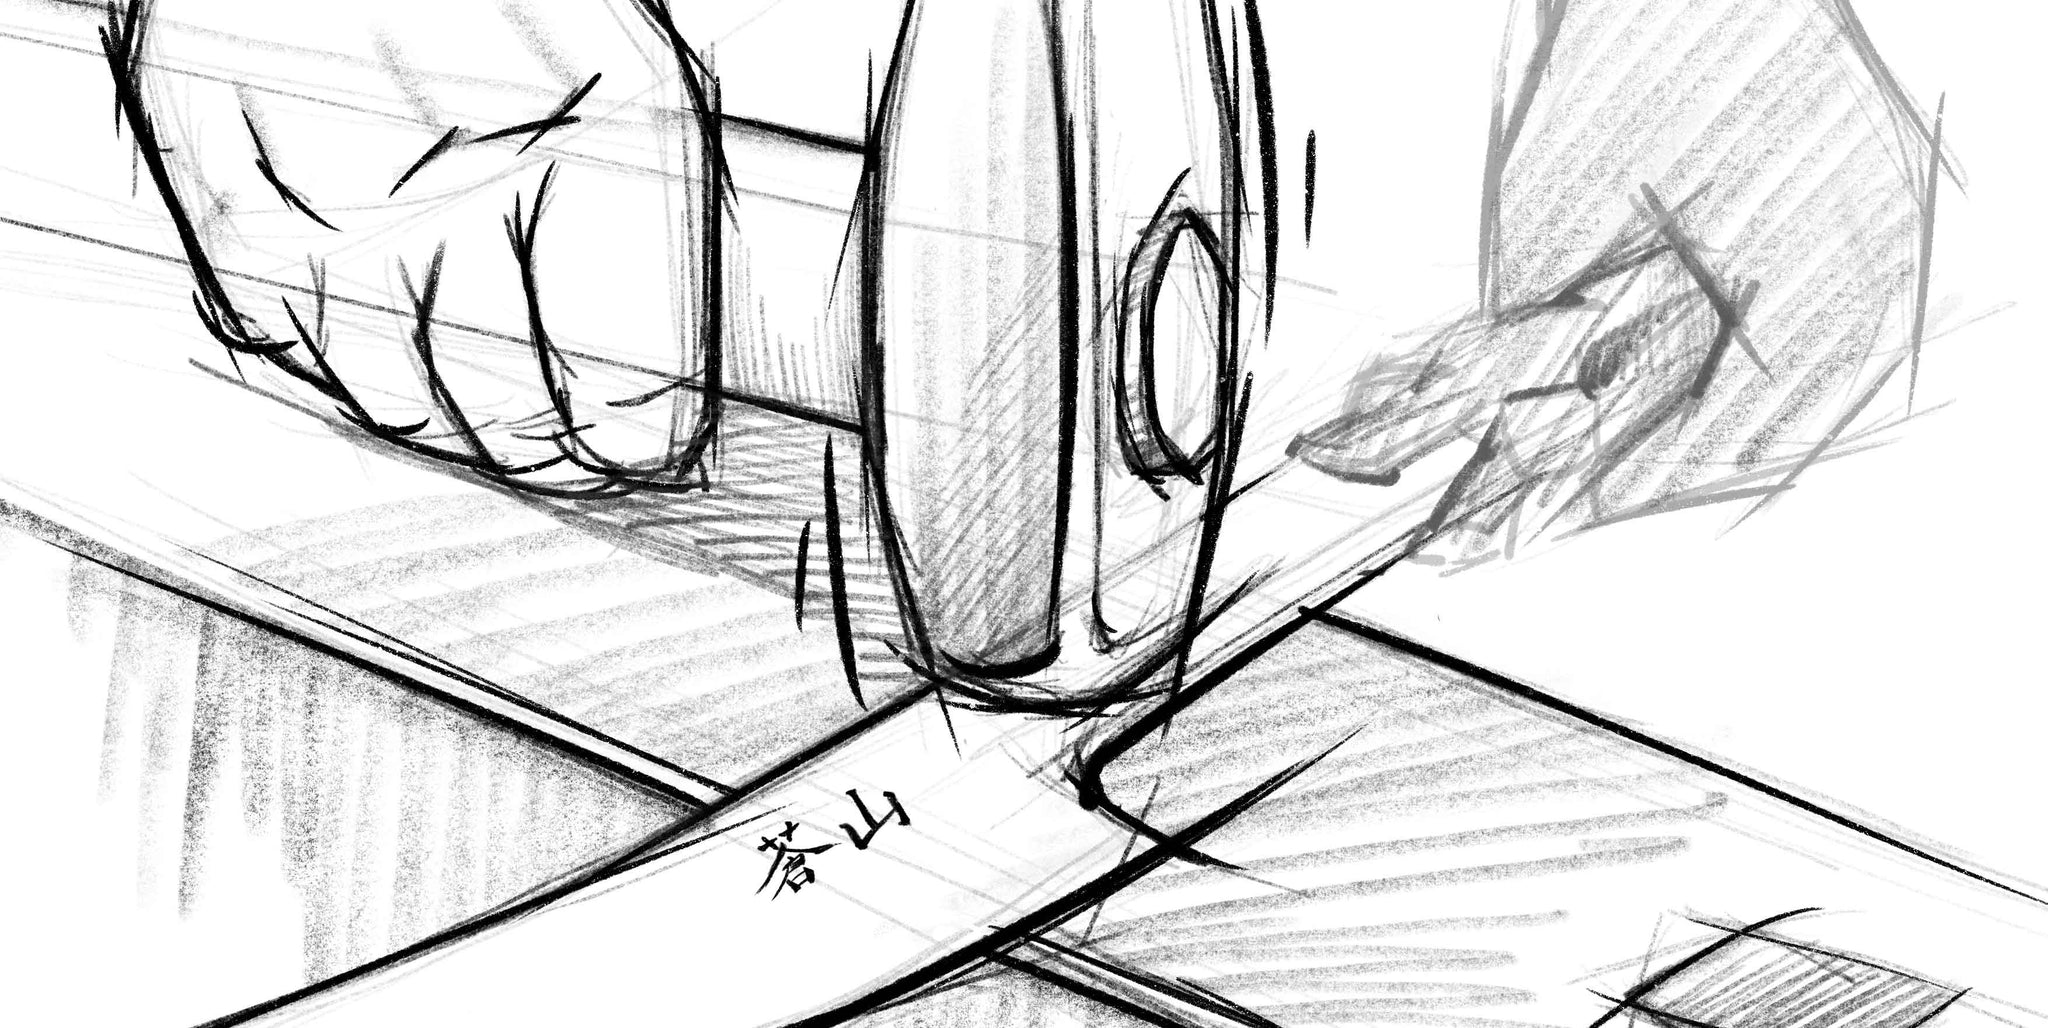 A sketch of a kitchen knife being hammered to shape on an anvil.